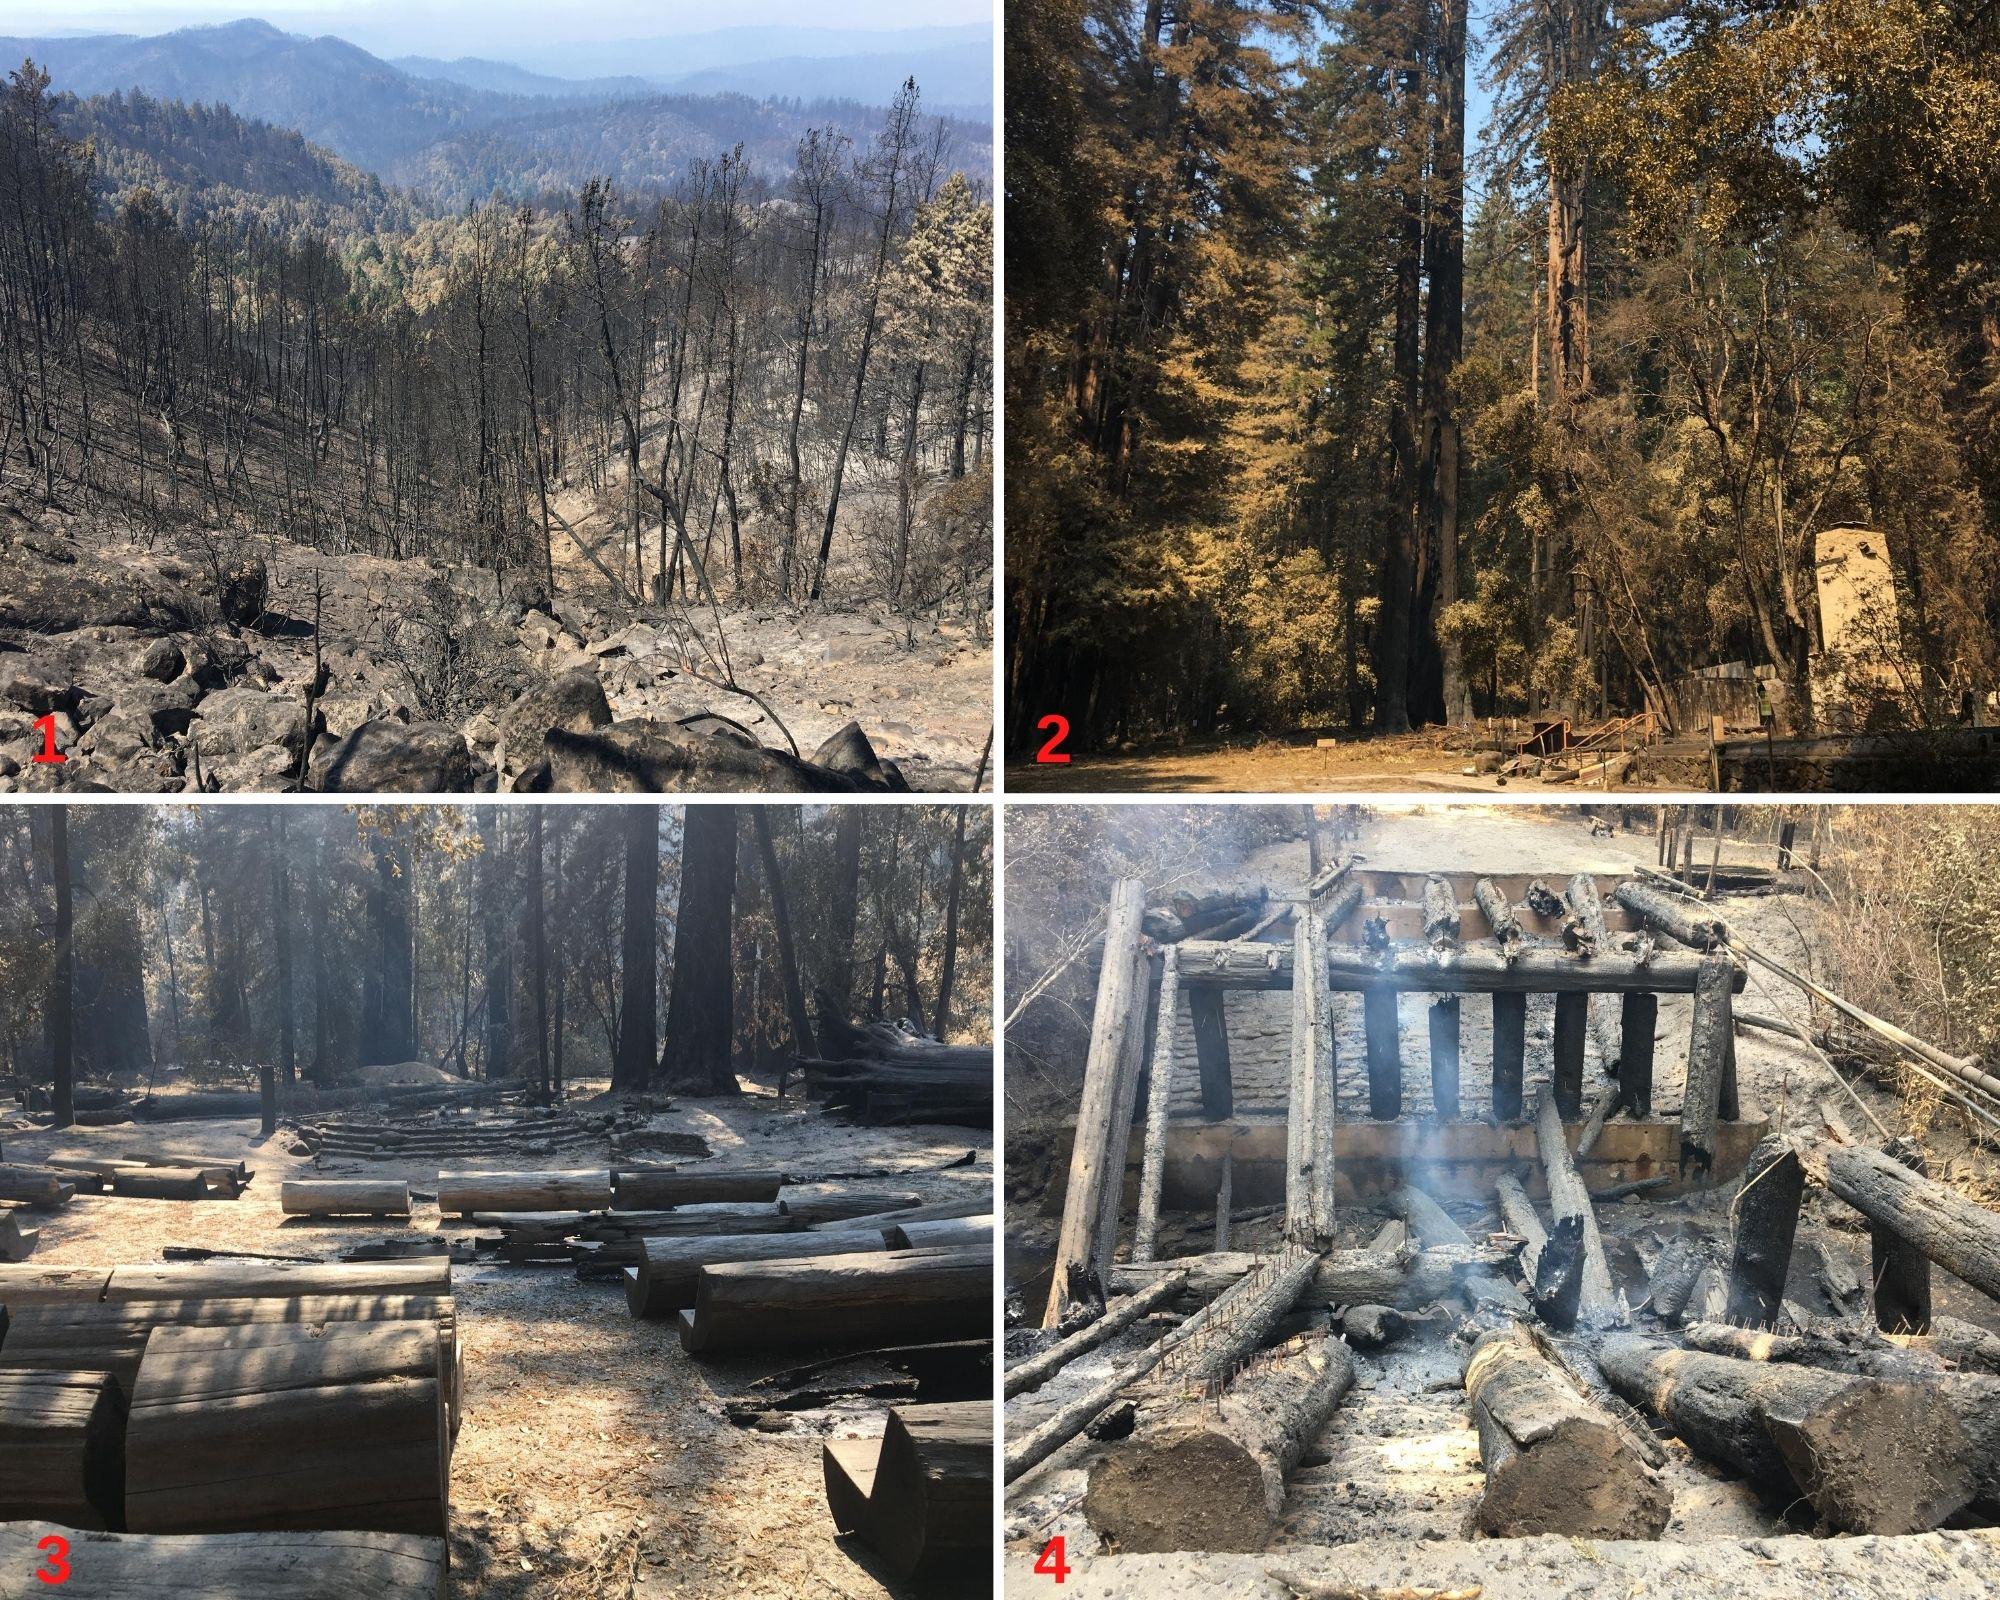 Photo 1: View of burned trees looking northwest from Eagle Repeater into the basin. Photo 2: Remnants of Park Headquarters. Photo 3: Amphitheater. Photo 4: Gazos Bridge at North Escape Road. Photos from California State Parks. For more photos and video, please visit www.parks.ca.gov/incidents.